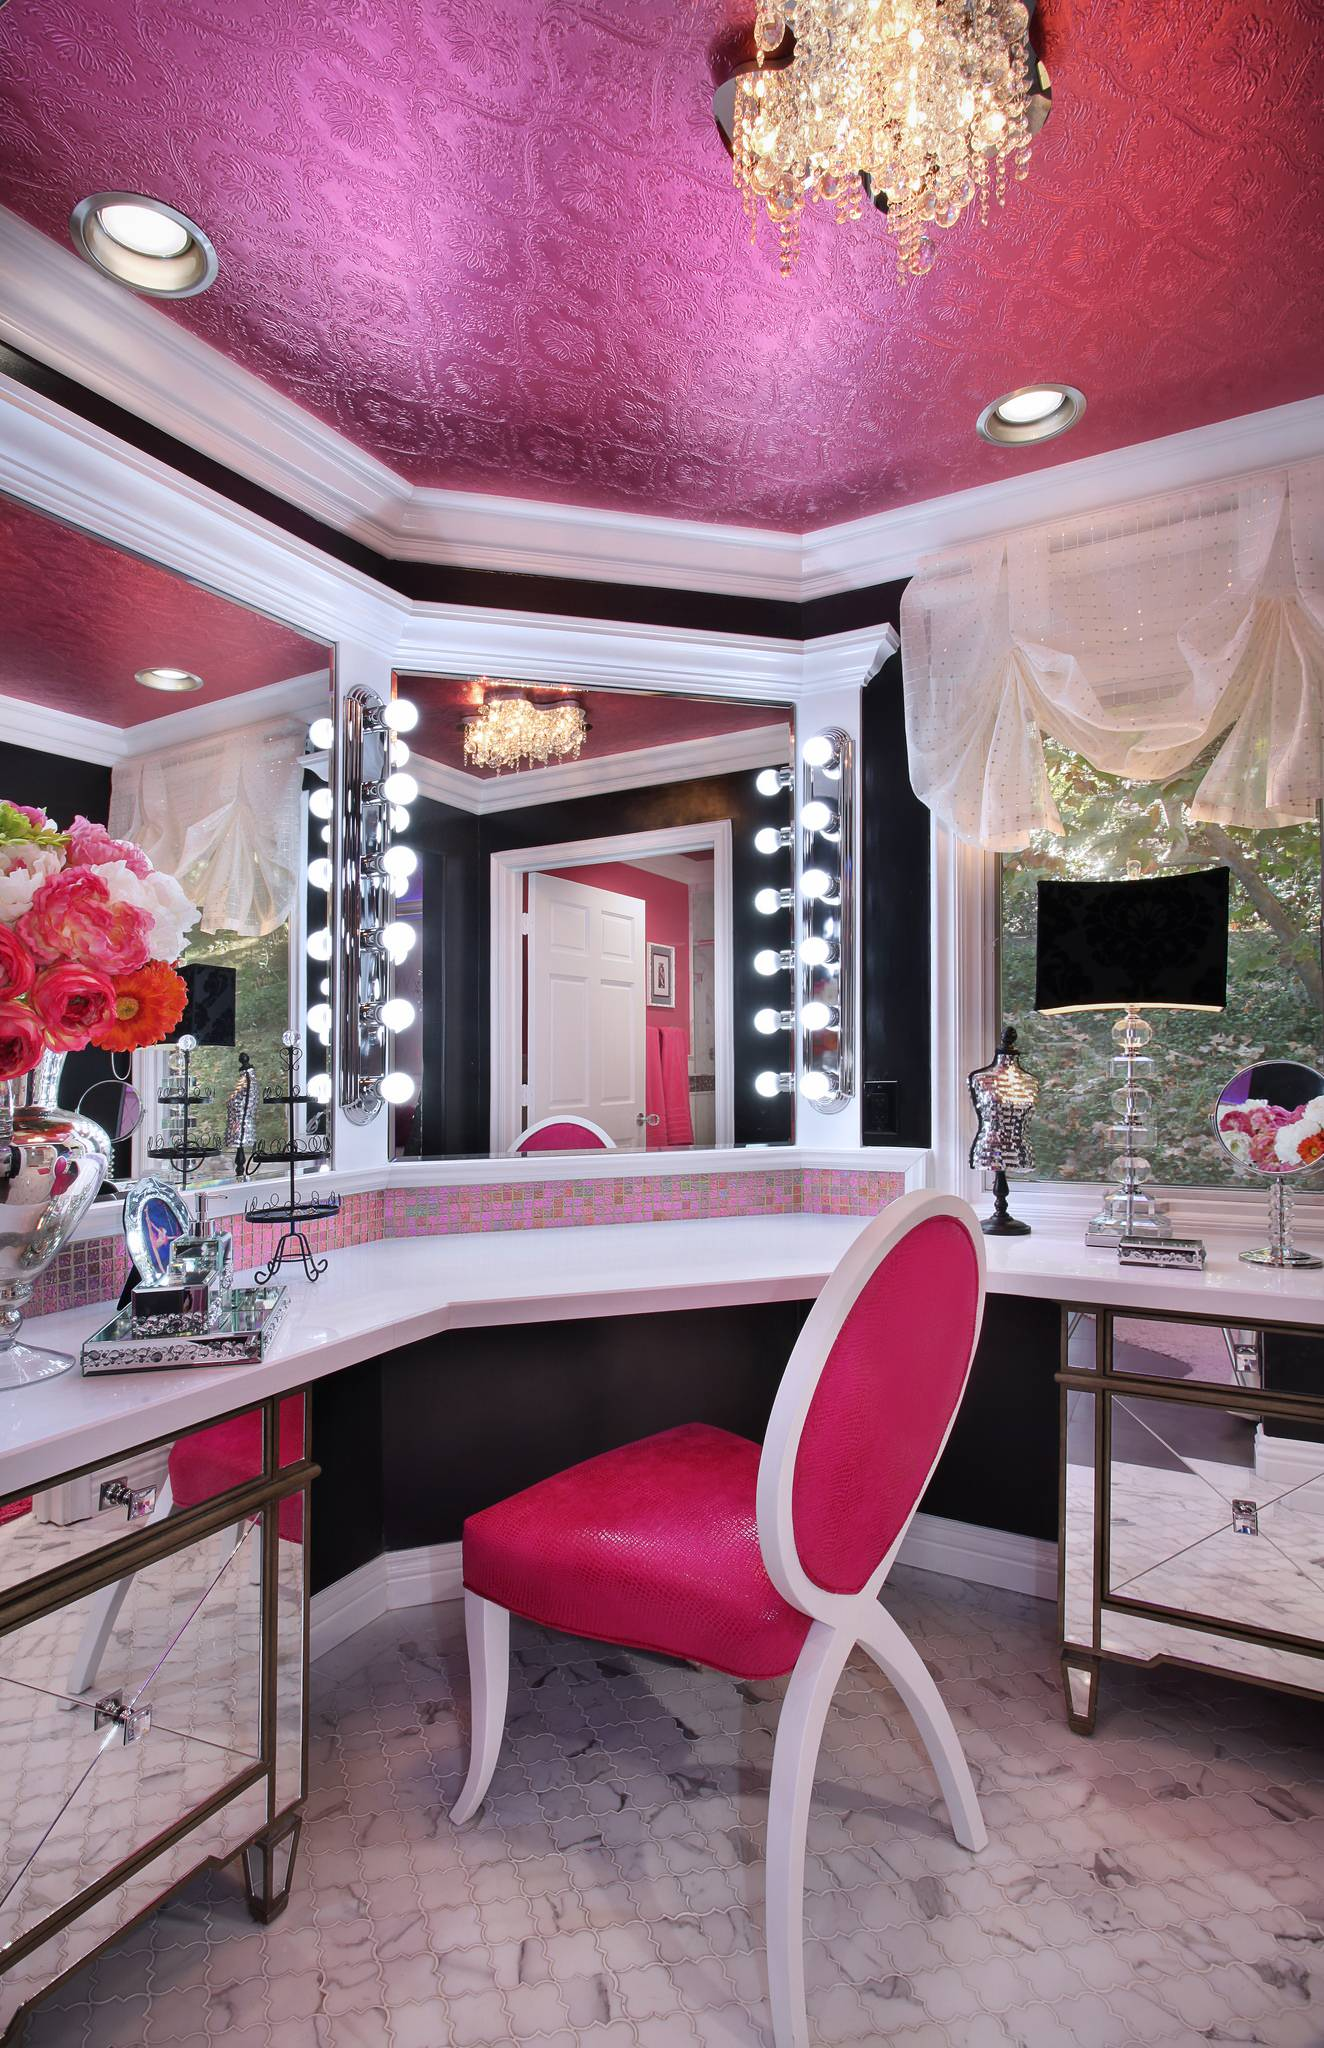 7 steps to your own kylie jenner inspired glam room for Home decor ideas images